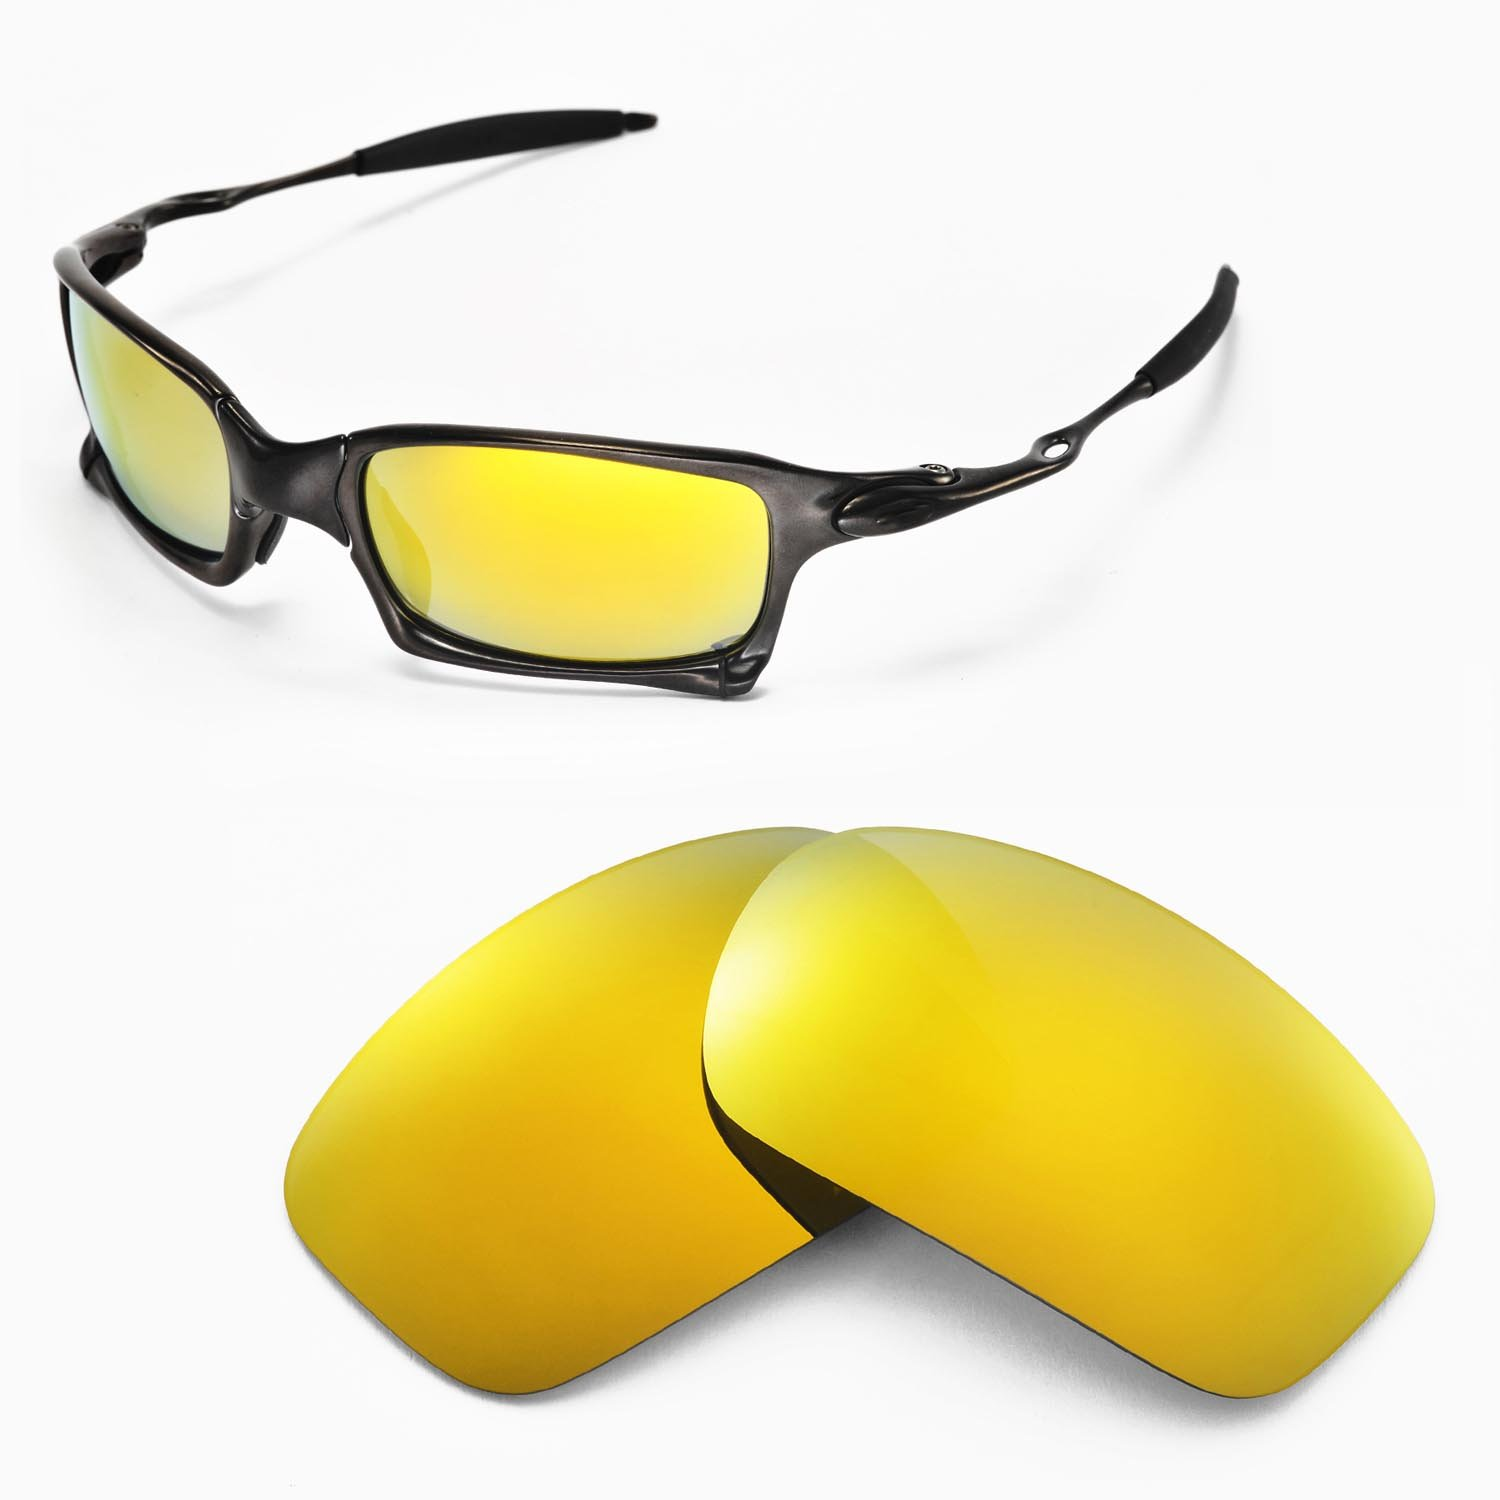 ae84d56aa9 Amazon.com  Walleva Replacement Lenses for Oakley X Squared Sunglasses -  Multiple Options Available (24K Gold Mirror Coated - Polarized)  Sports    Outdoors